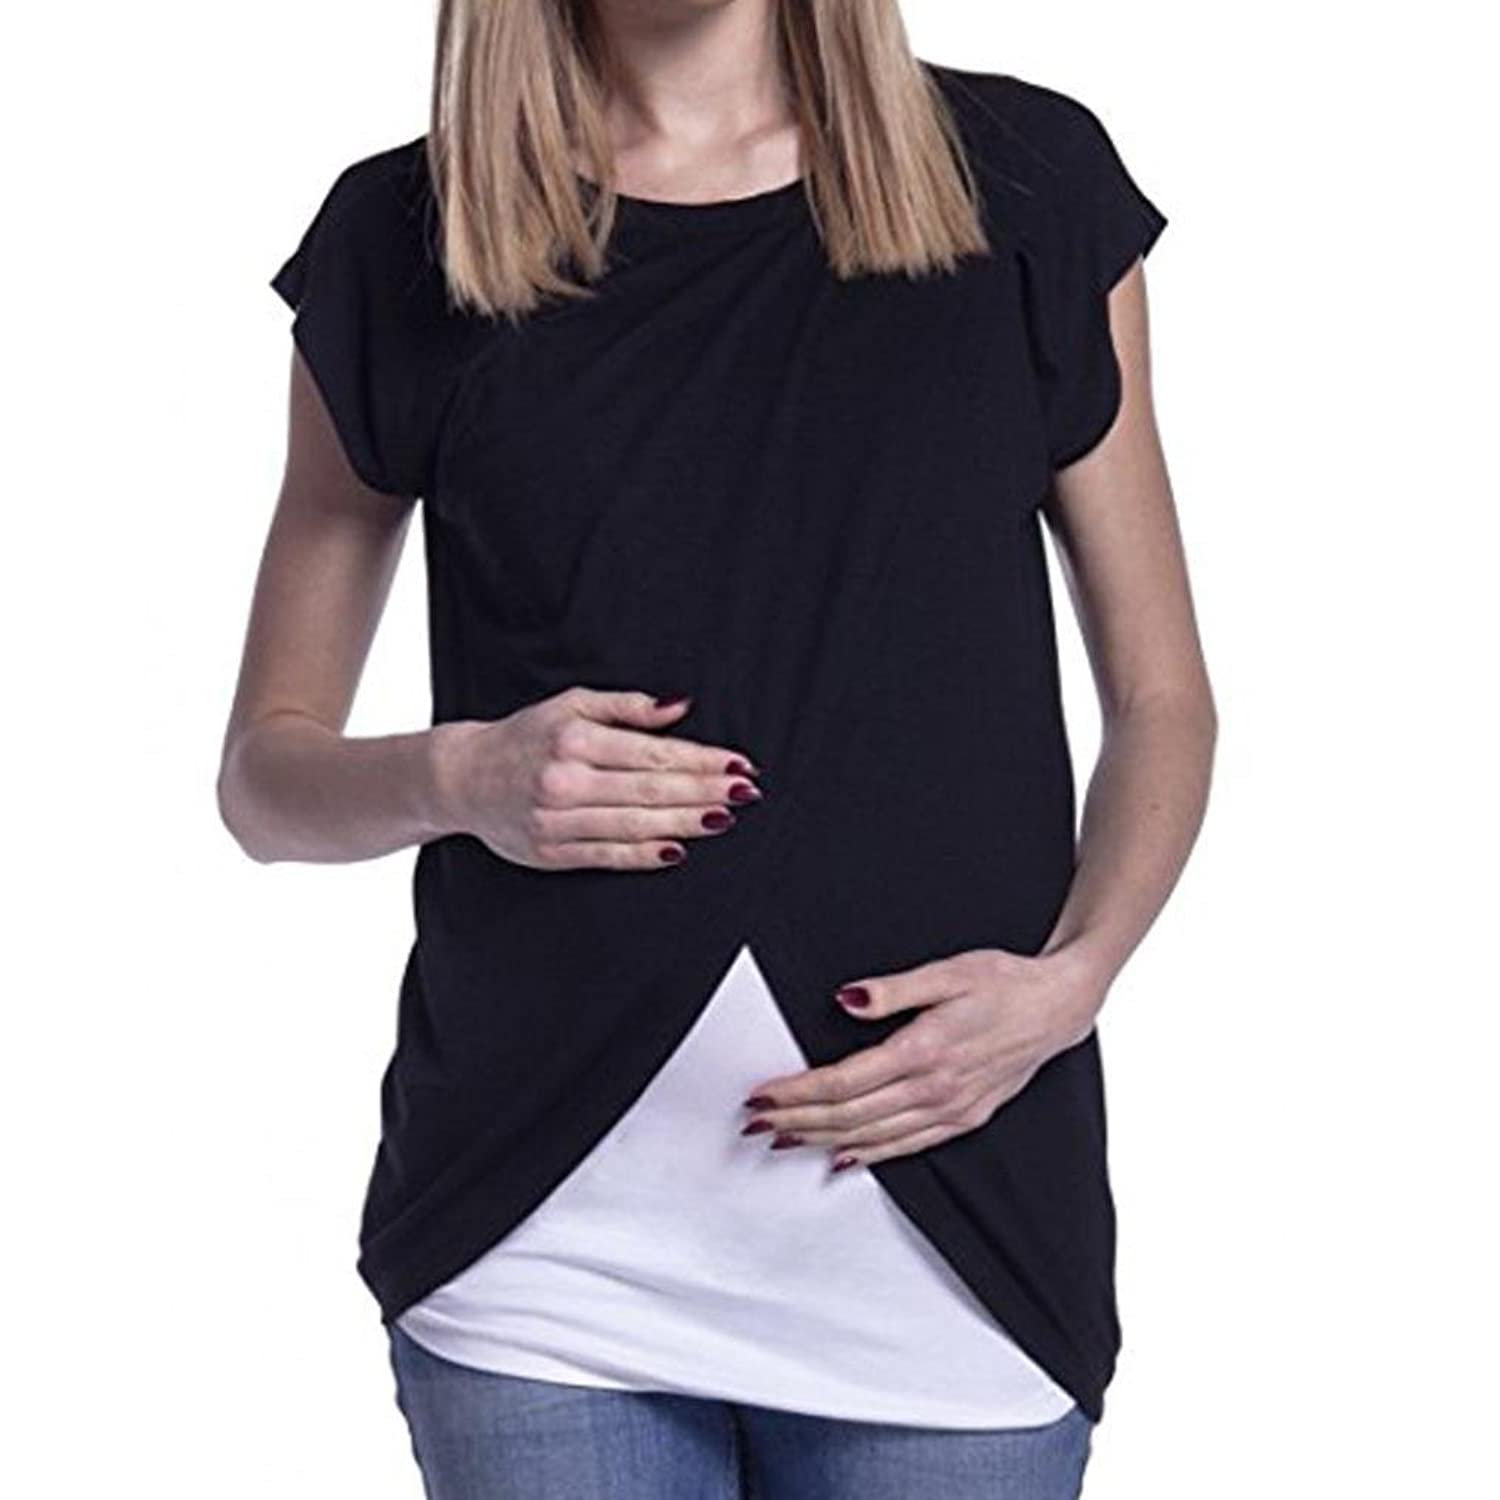 Amazon.com: DondPO Womens Maternity Tee Shirt Ruched Side-Shirred Nursing Breastfeeding Wrap Top Cap Sleeves Double Layer Loose Summer Blouse T-Shirt: ...